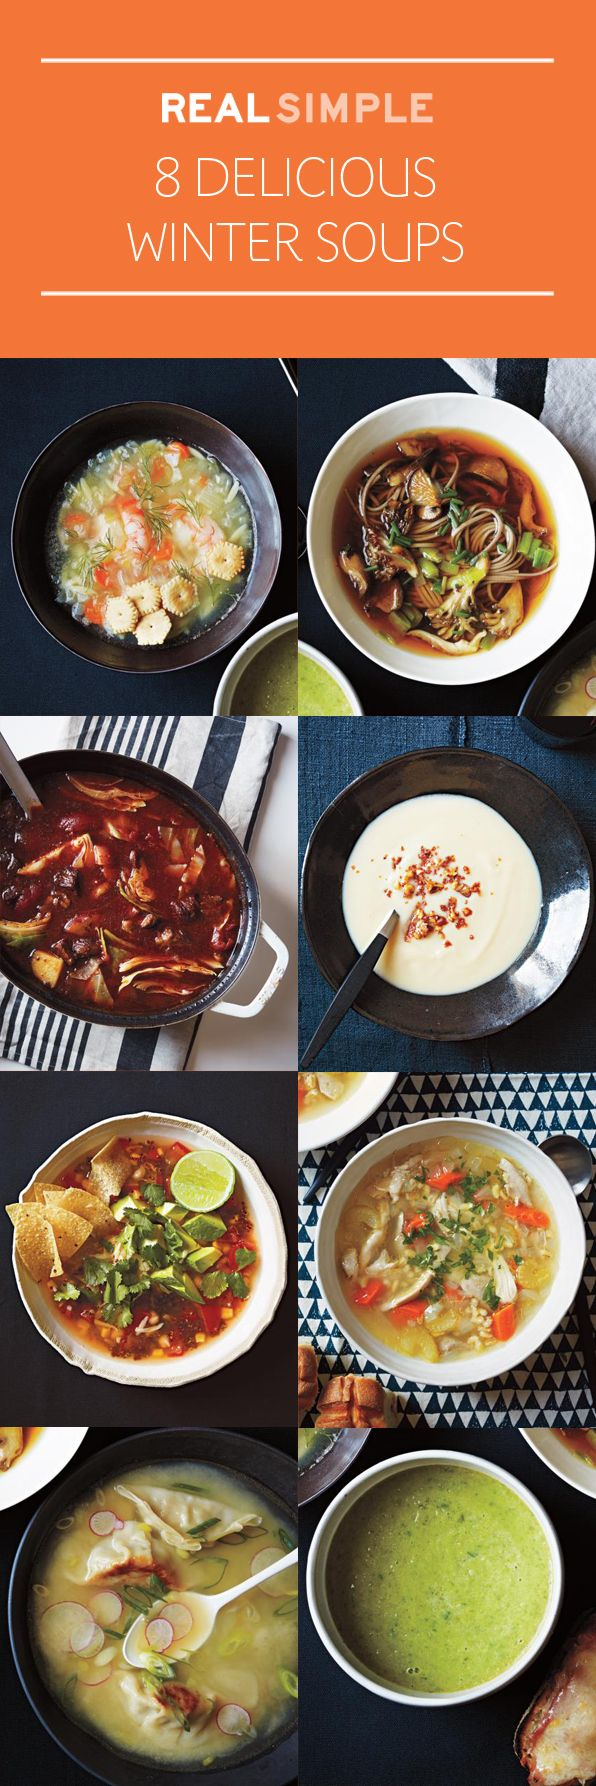 On what feels like a never-ending quest for a seasonal meal to please all palates? Look no further than these eight soup recipes: simple, surprising, delicious.